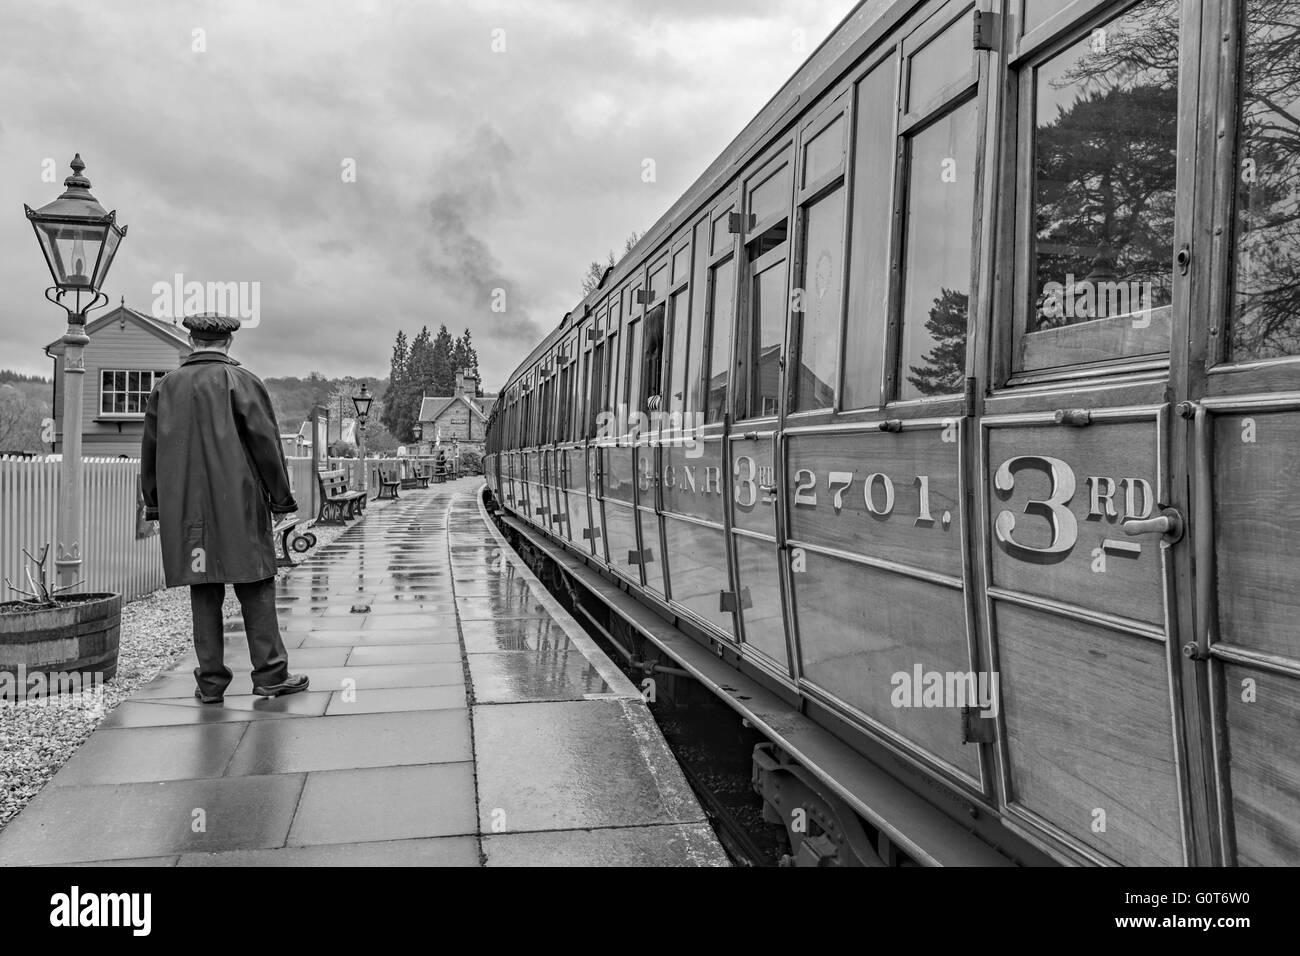 Arley train Station on the Severn Valley Railway in monochrome, Worcestershire, England, UK - Stock Image